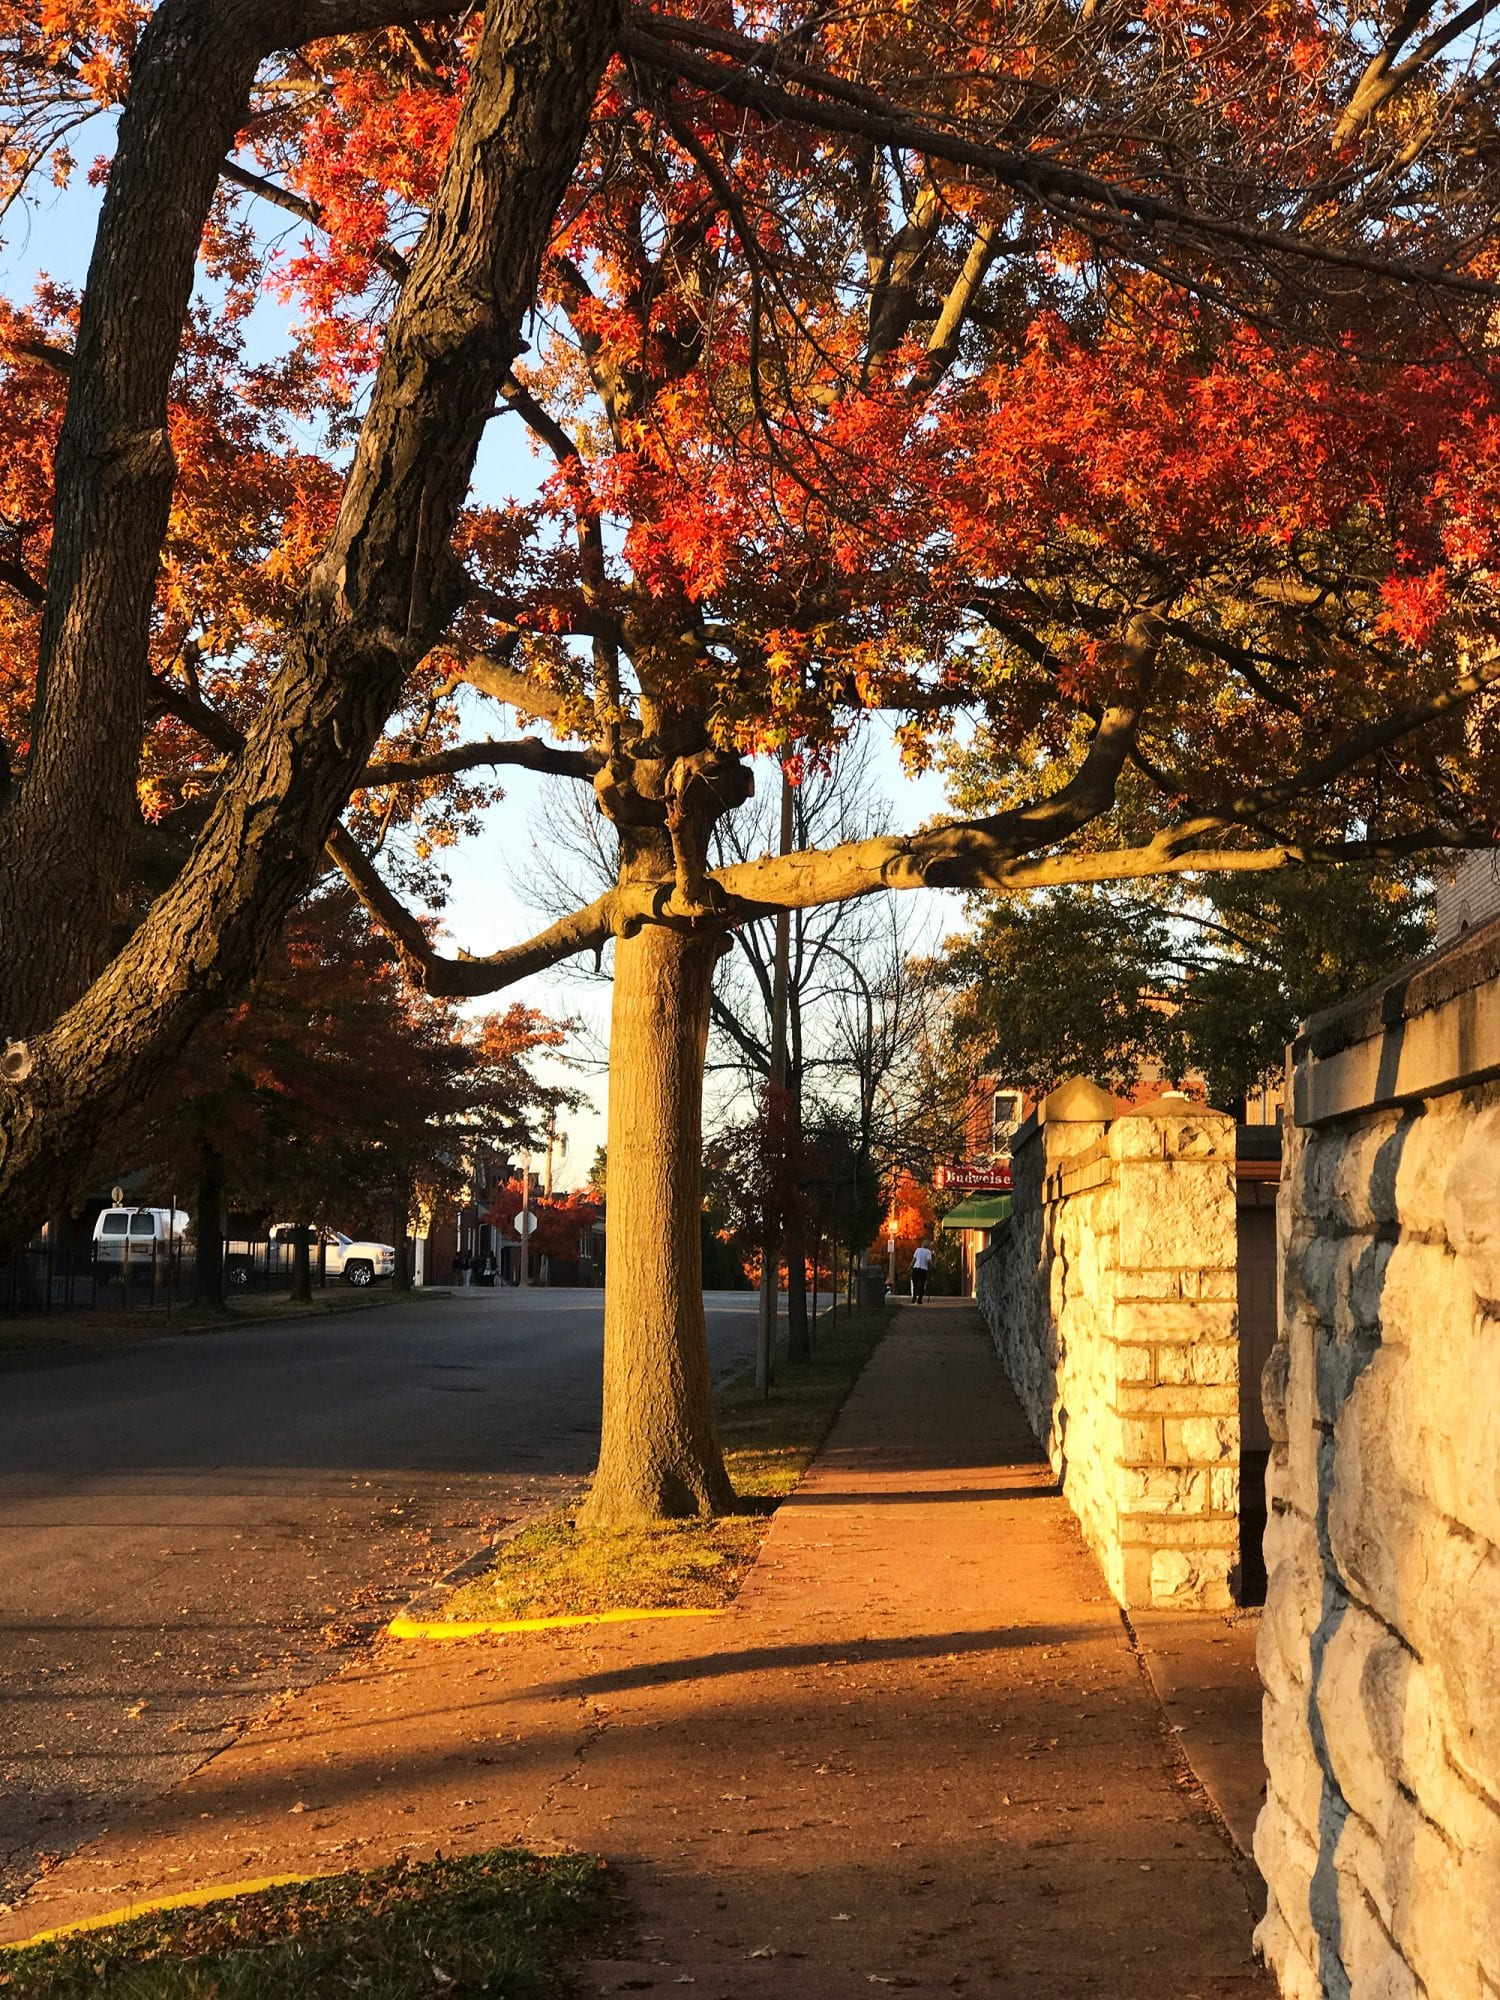 Fall foliage on Compton Avenue in Dutchtown.